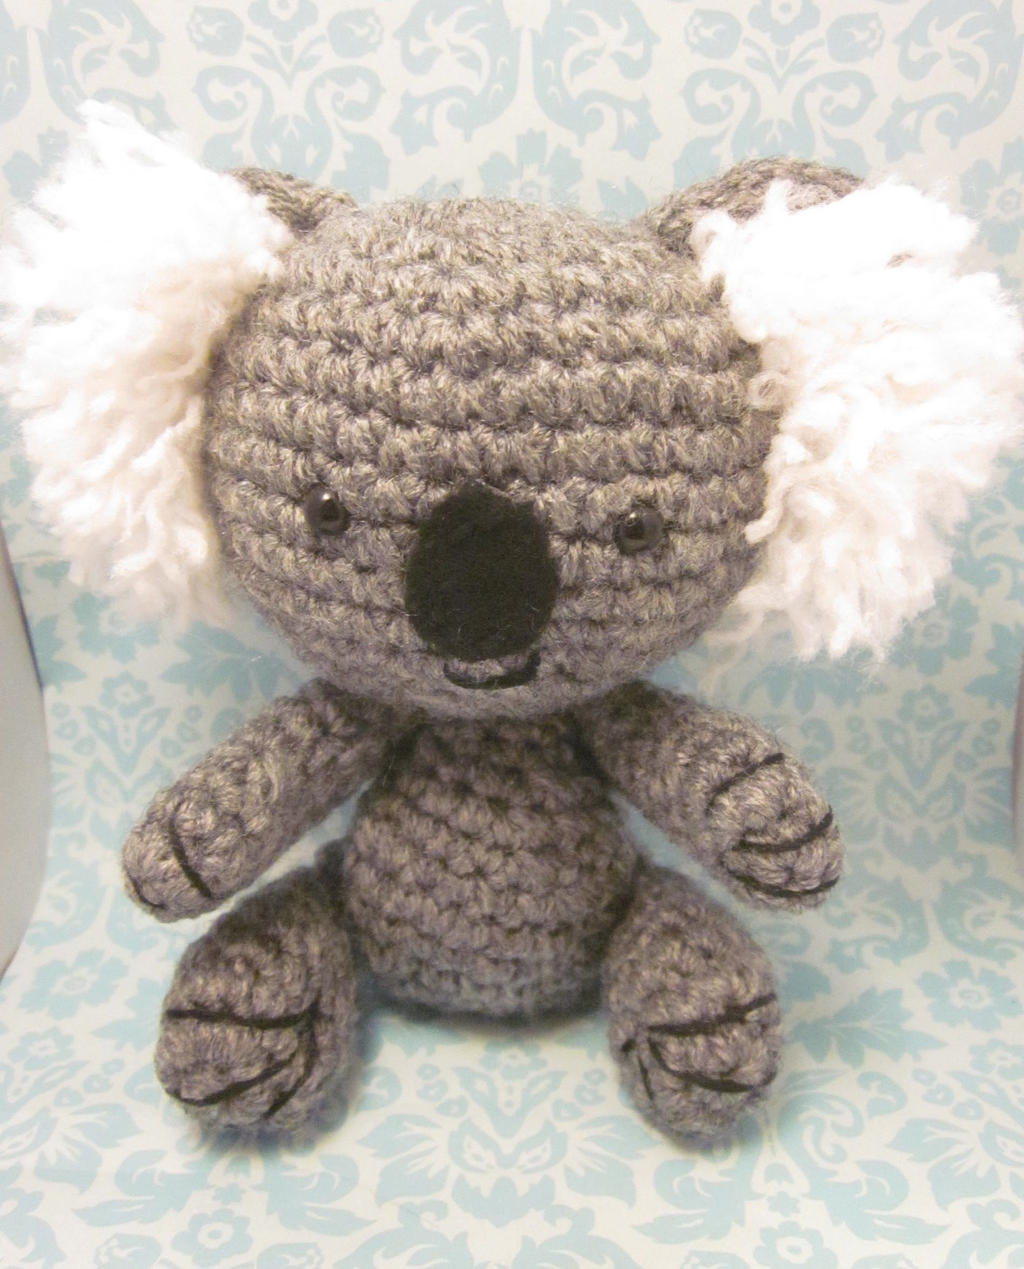 Koala Amigurumi Patron Gratis : Smiling Koala Amigurumi Crochet Doll 2 by Spudsstitches on ...